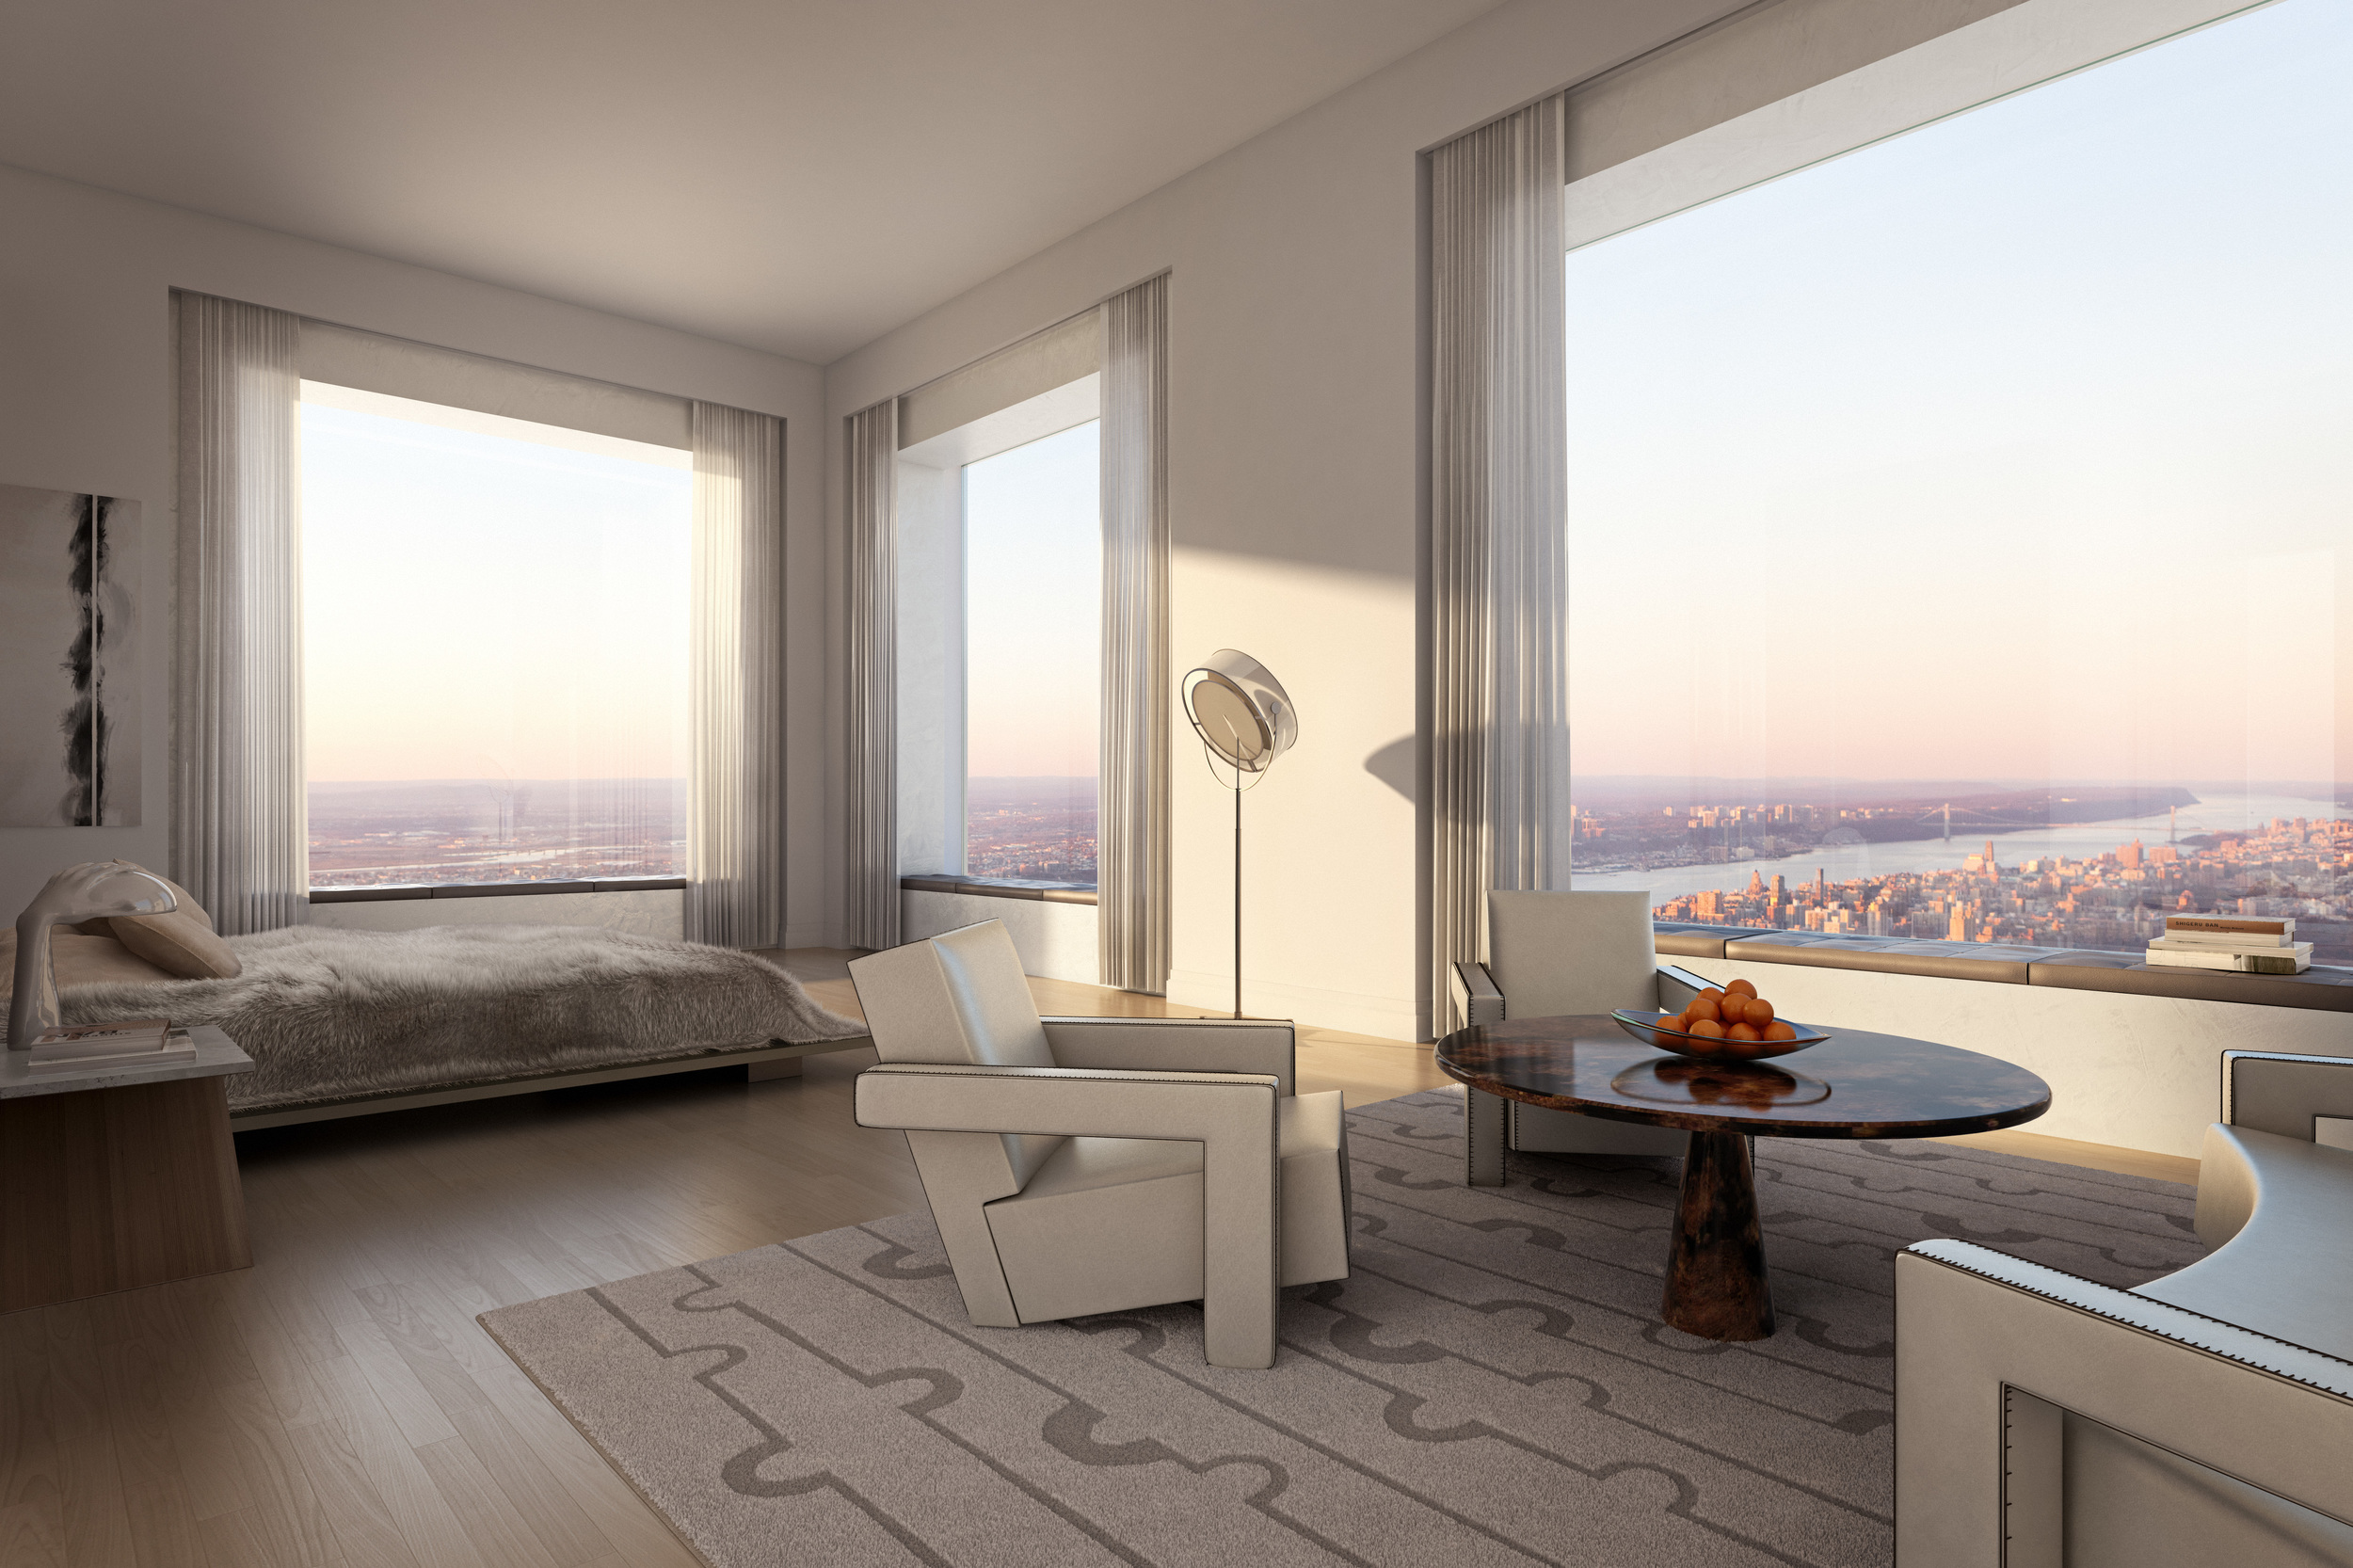 New York Apartment Building Is Tallest In The Americas